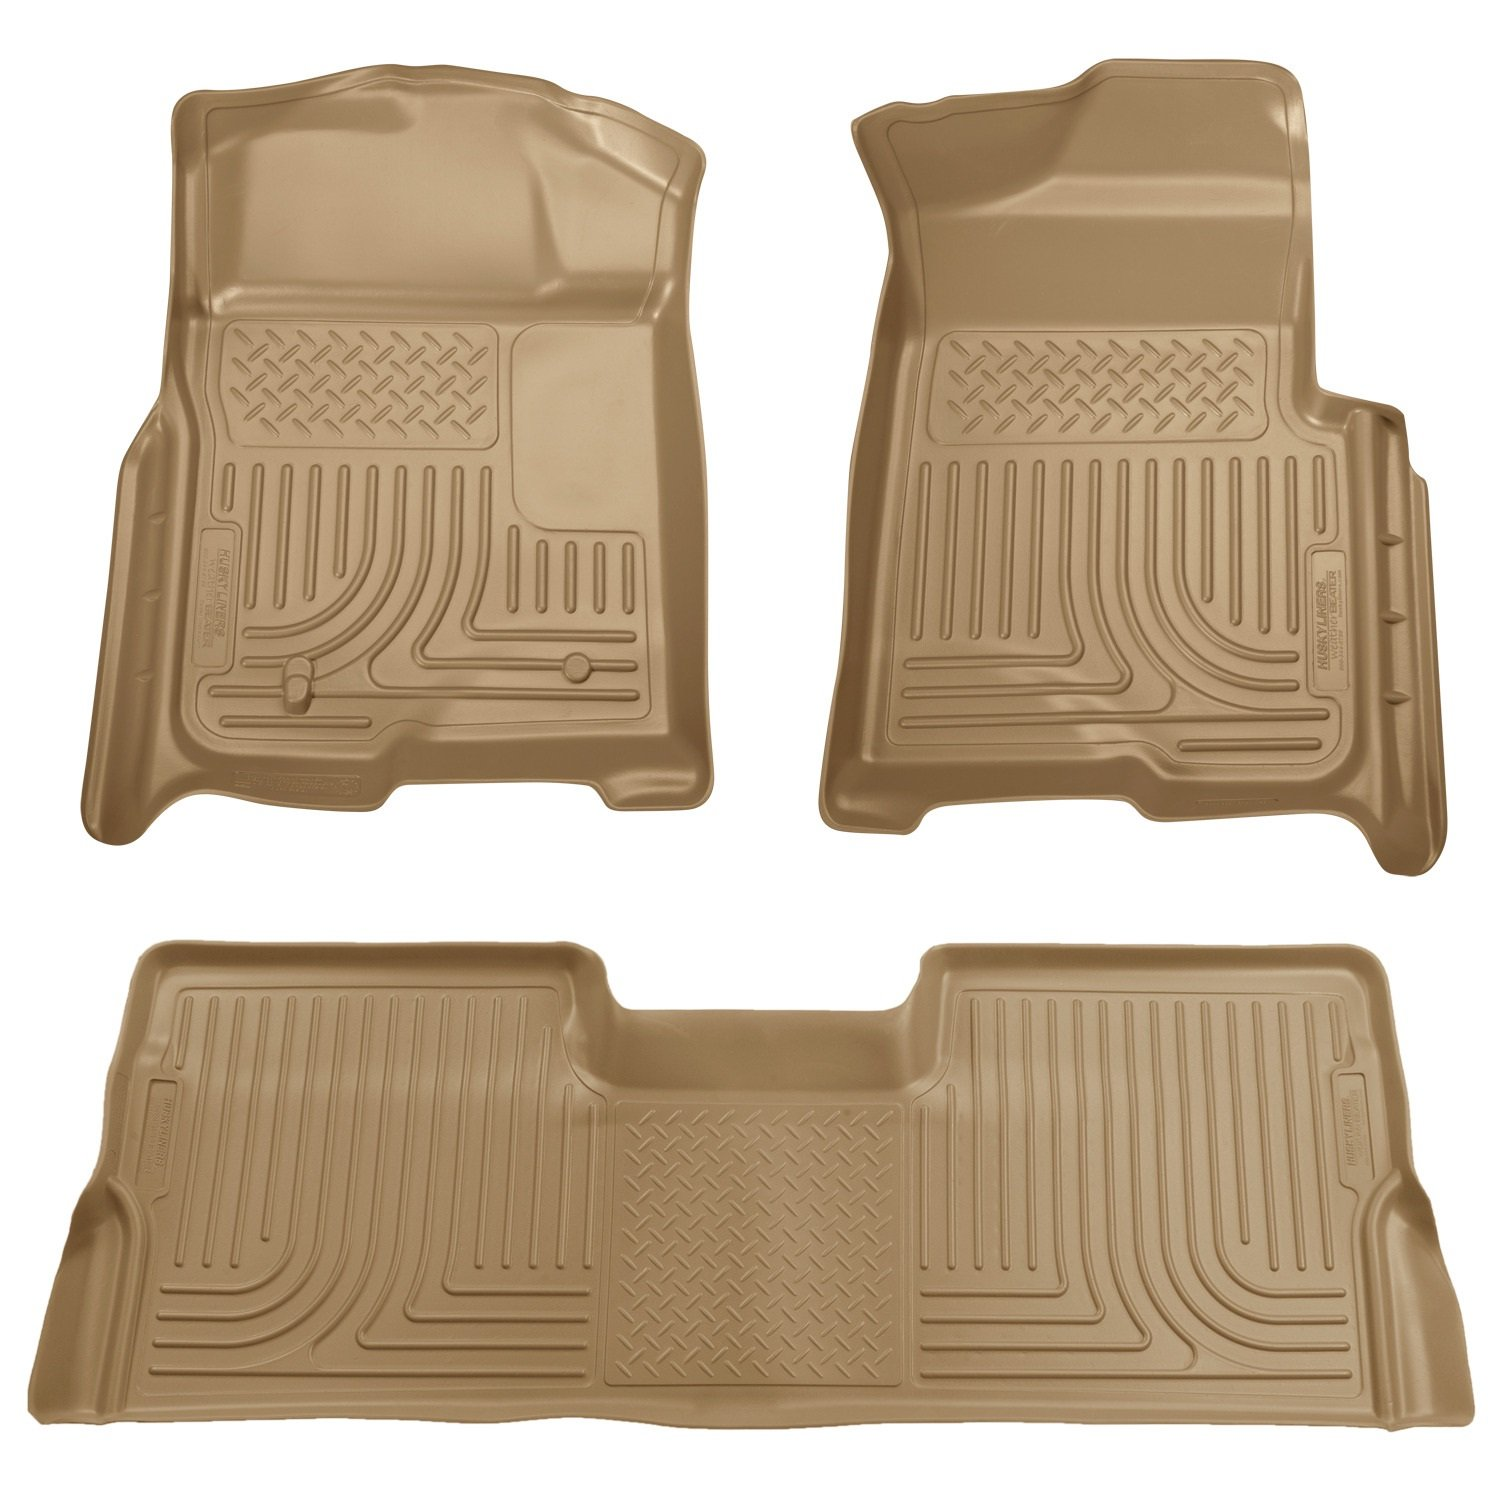 Husky Liners Front & 2nd Seat Floor Liners Fits 08-10 F250/F350/450 Crew Cab Winfield Consumer Products 98383